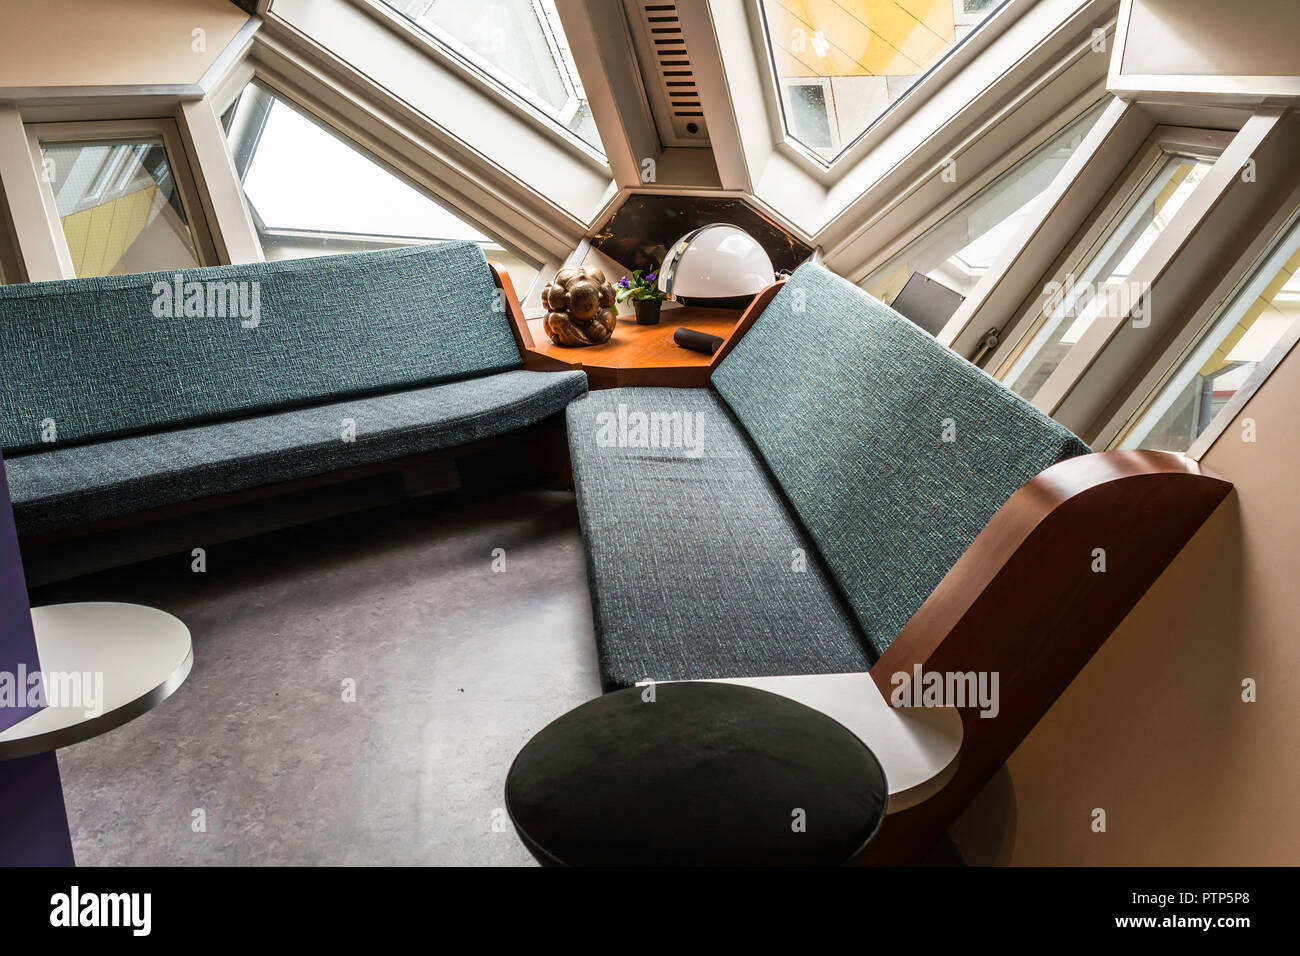 Rotterdam, Netherlands - May 22, 2018: Living room in The Kijk-Kubus (Show-Cube) - a furnished museum house, designed and constructed for the visitors - Stock Image